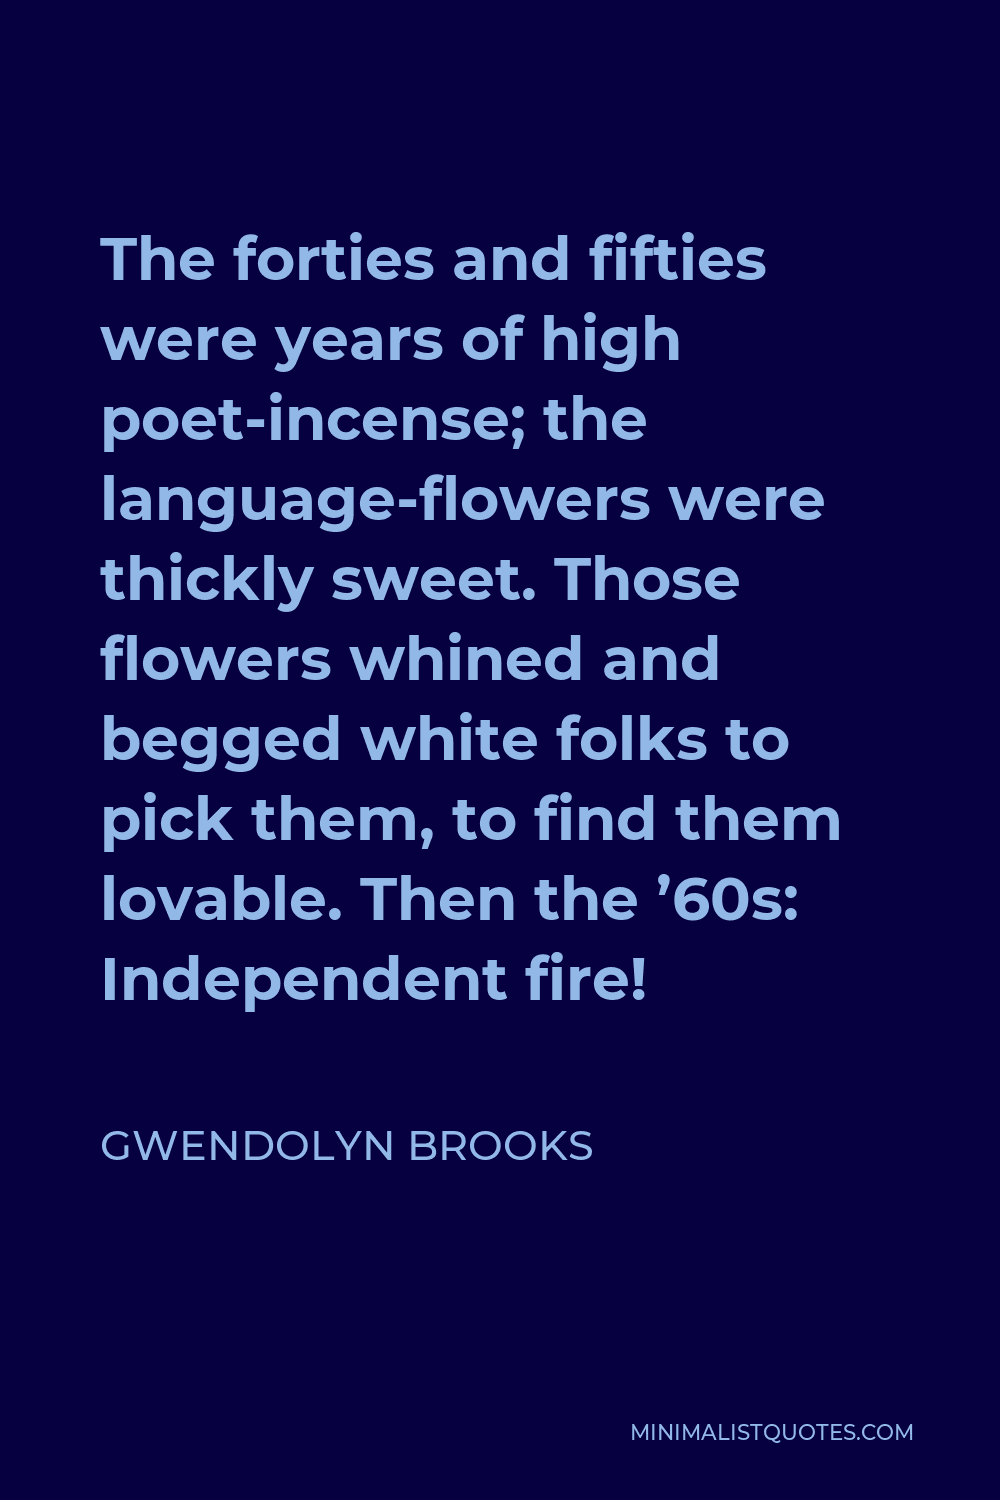 Gwendolyn Brooks Quote - The forties and fifties were years of high poet-incense; the language-flowers were thickly sweet. Those flowers whined and begged white folks to pick them, to find them lovable. Then the '60s: Independent fire!